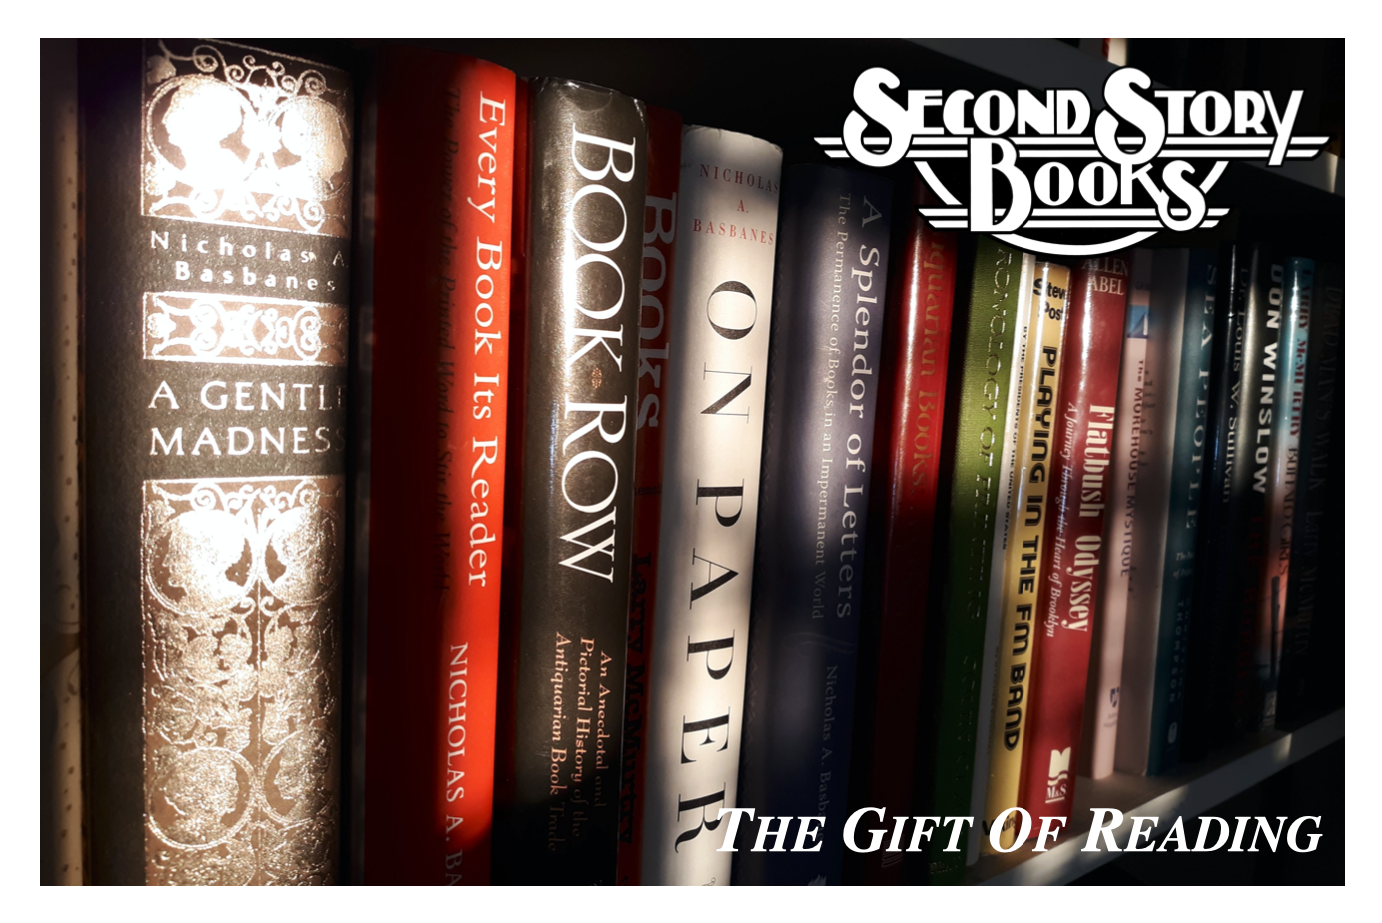 SECOND STORY BOOKS : $500 GIFT CERTIFICATE. $500 GIFT CERTIFICATE.